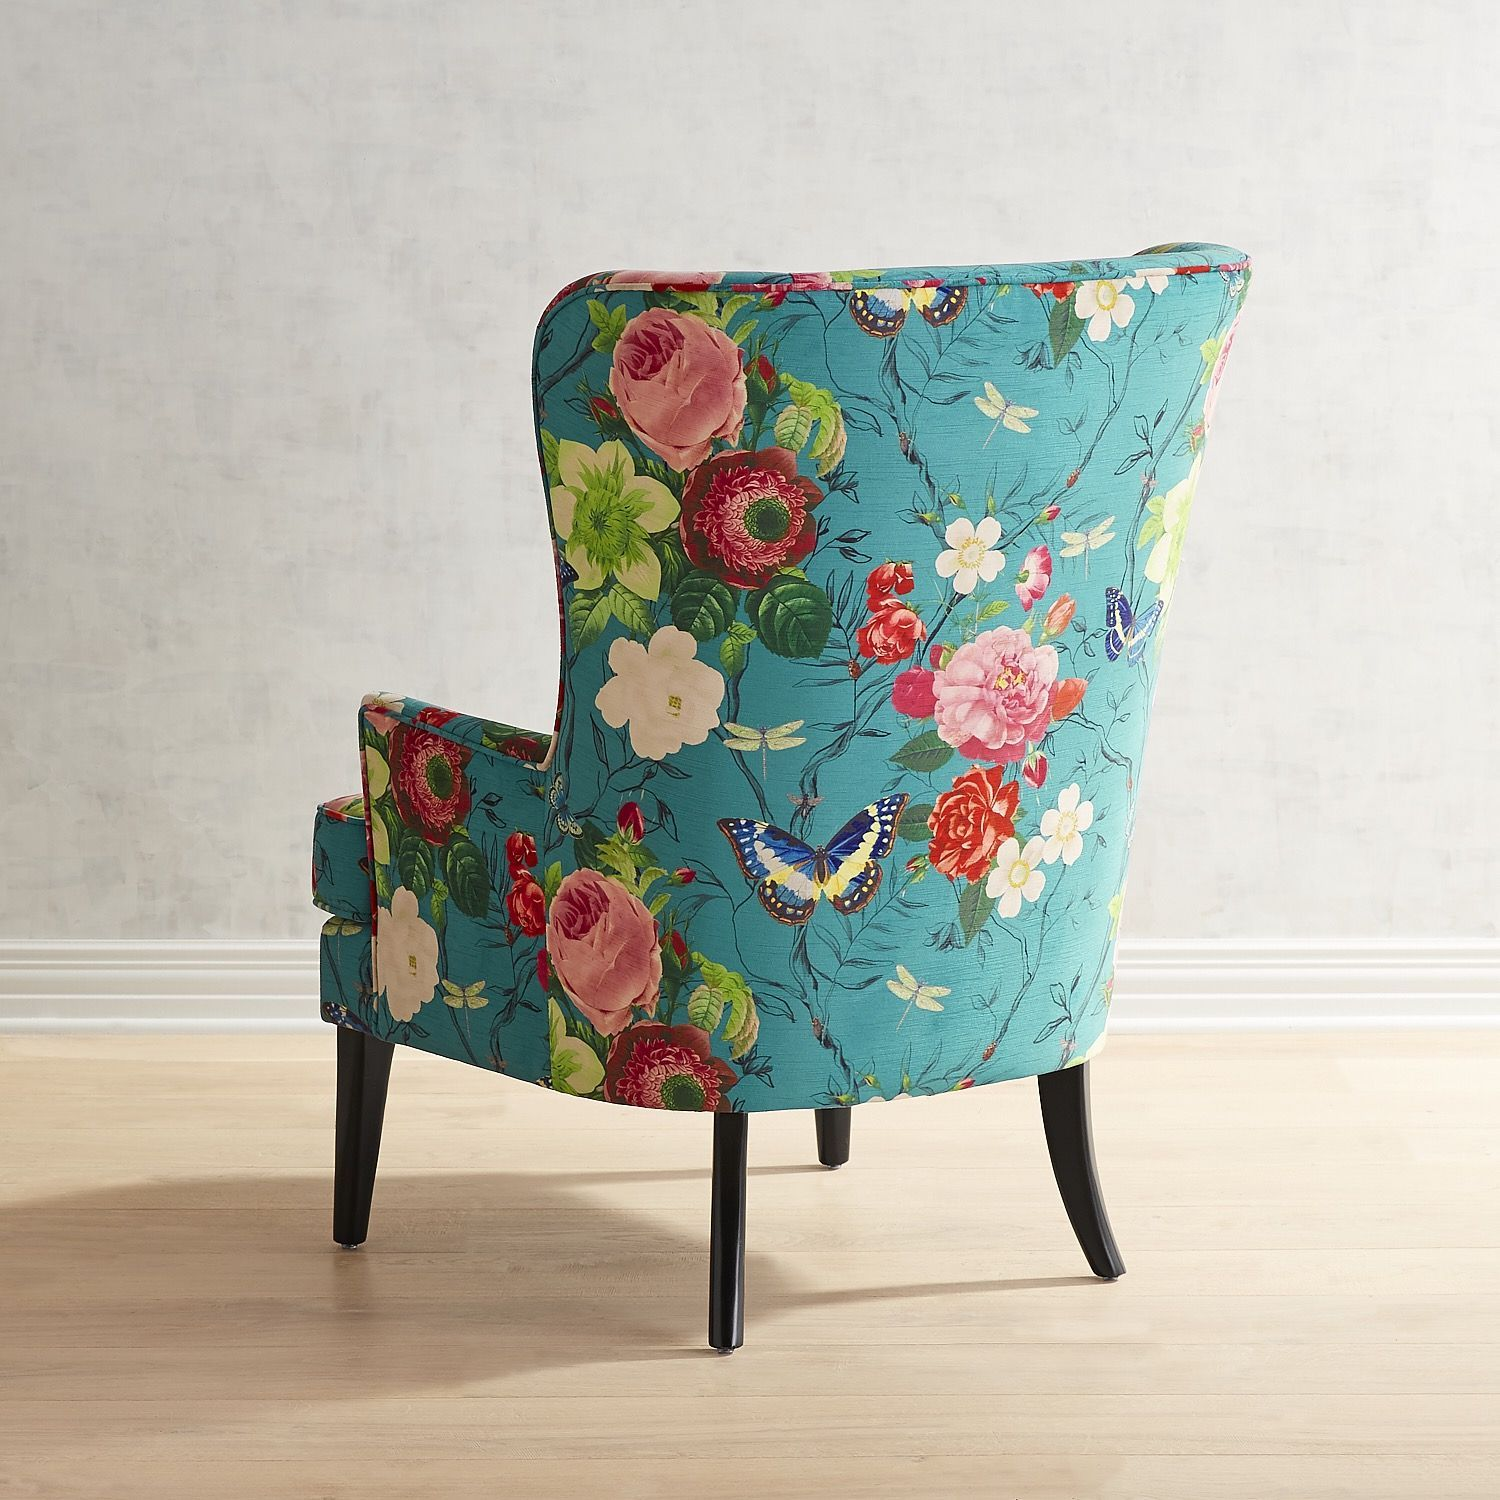 Stupendous Asher Flynn Floral Print Chair In 2019 Patterned Chair Gmtry Best Dining Table And Chair Ideas Images Gmtryco